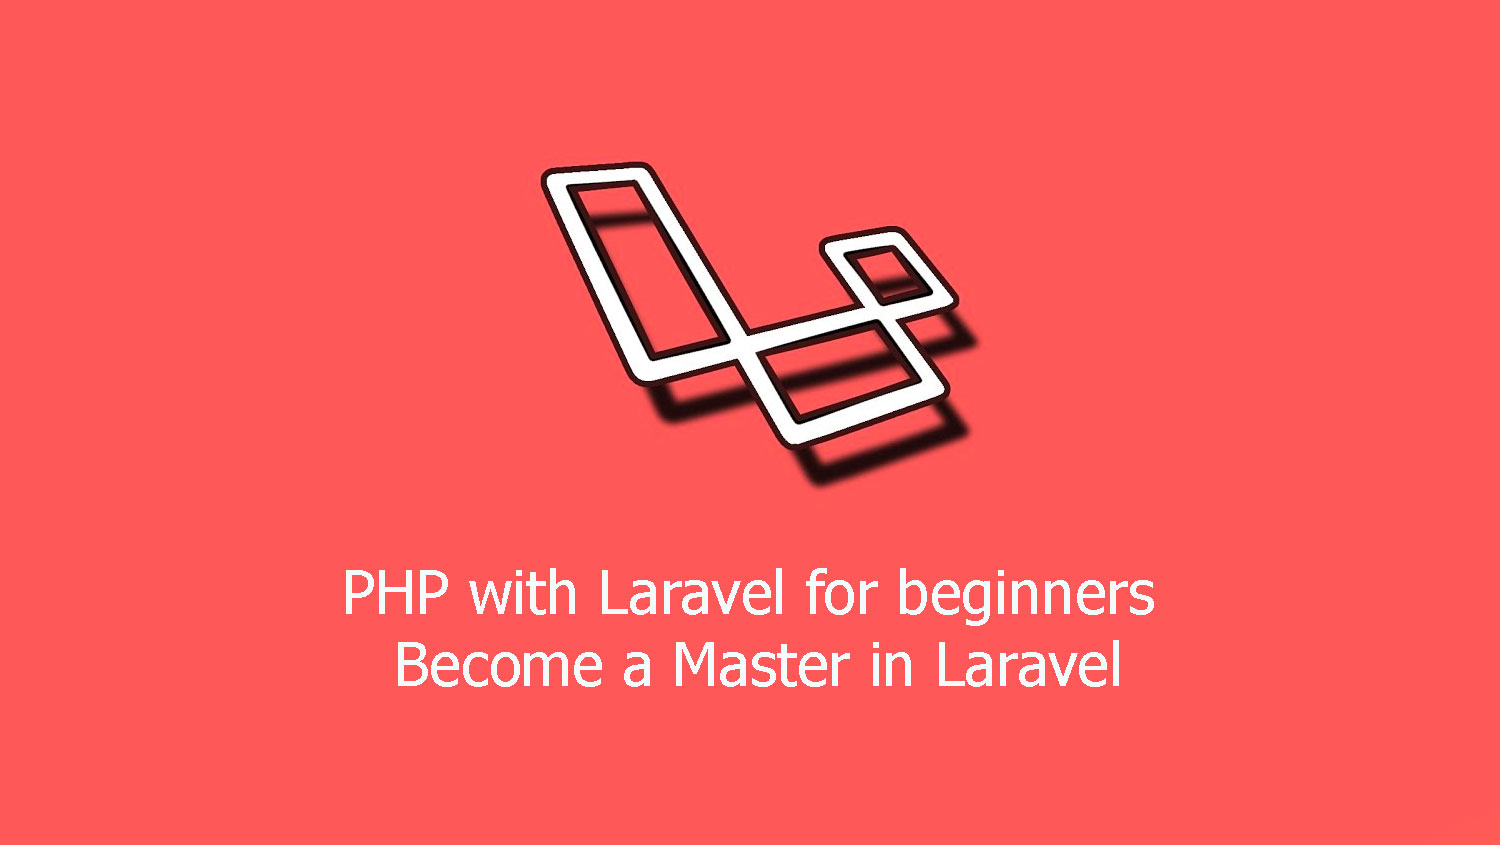 PHP with Laravel for beginners - Become a Master in Laravel Free Download